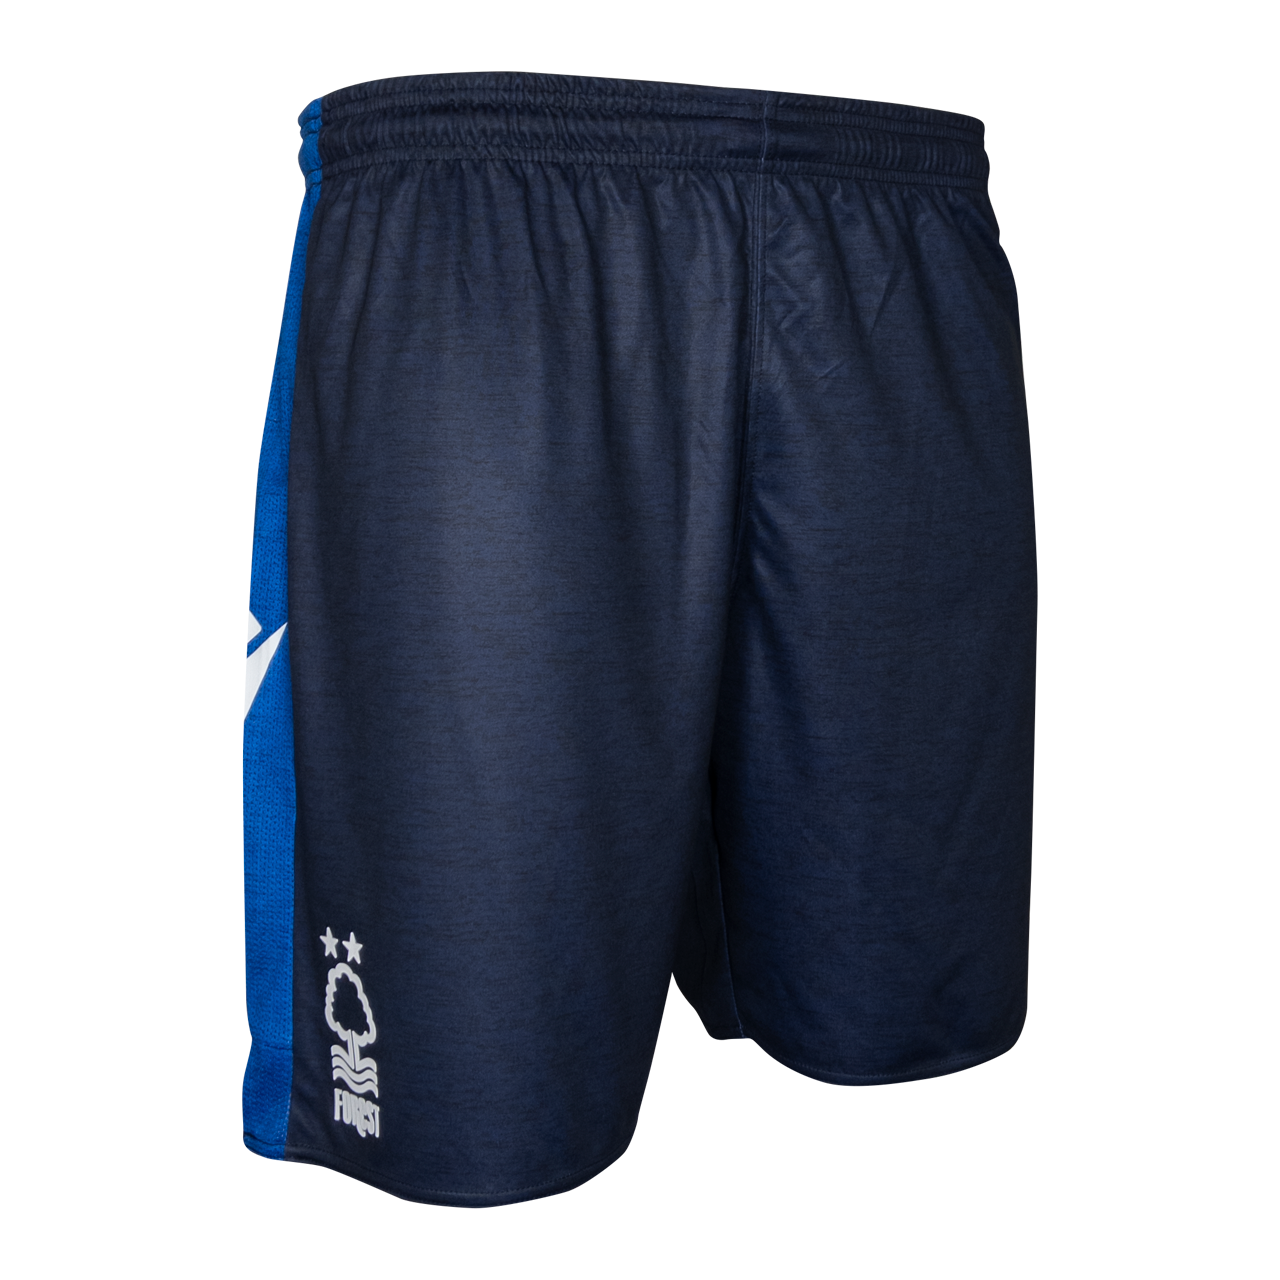 NFFC Junior Away Shorts 2019/20